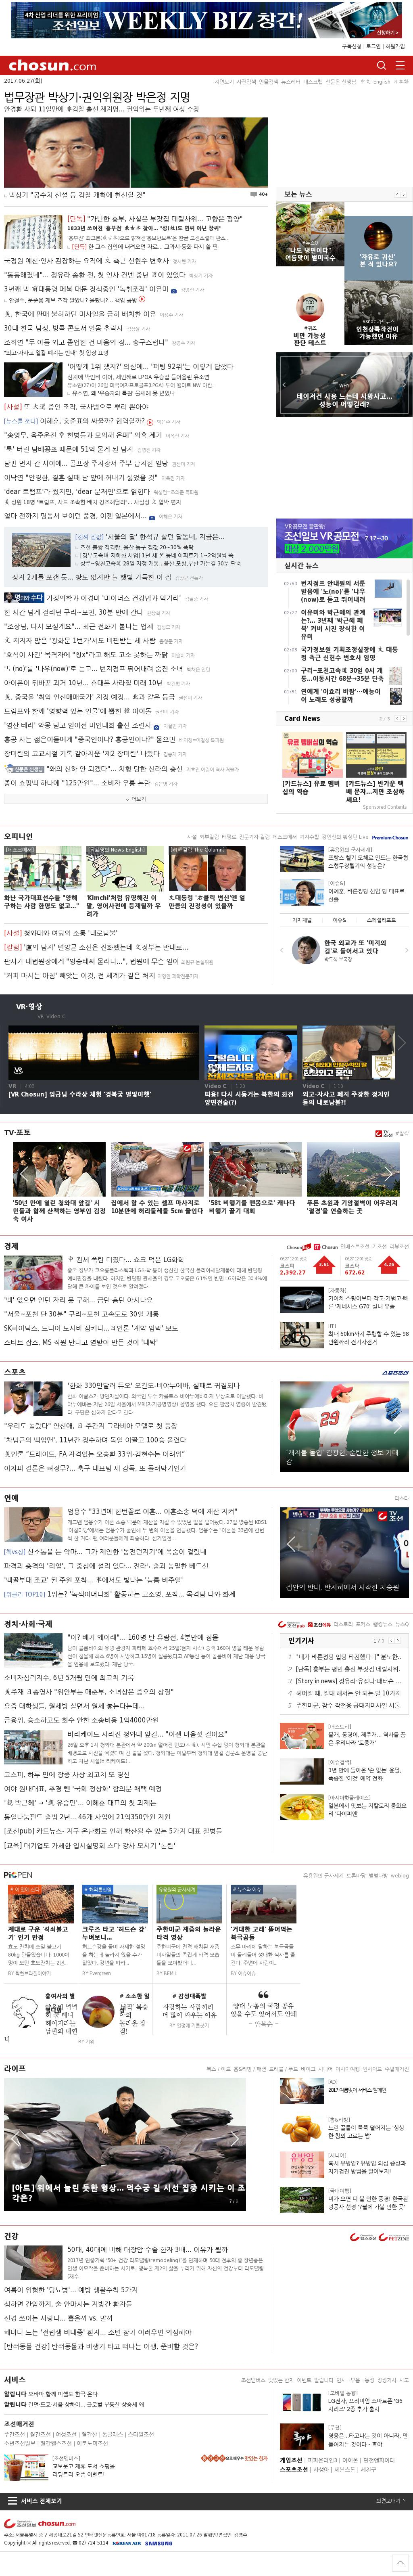 chosun.com at Tuesday June 27, 2017, 3:02 a.m. UTC